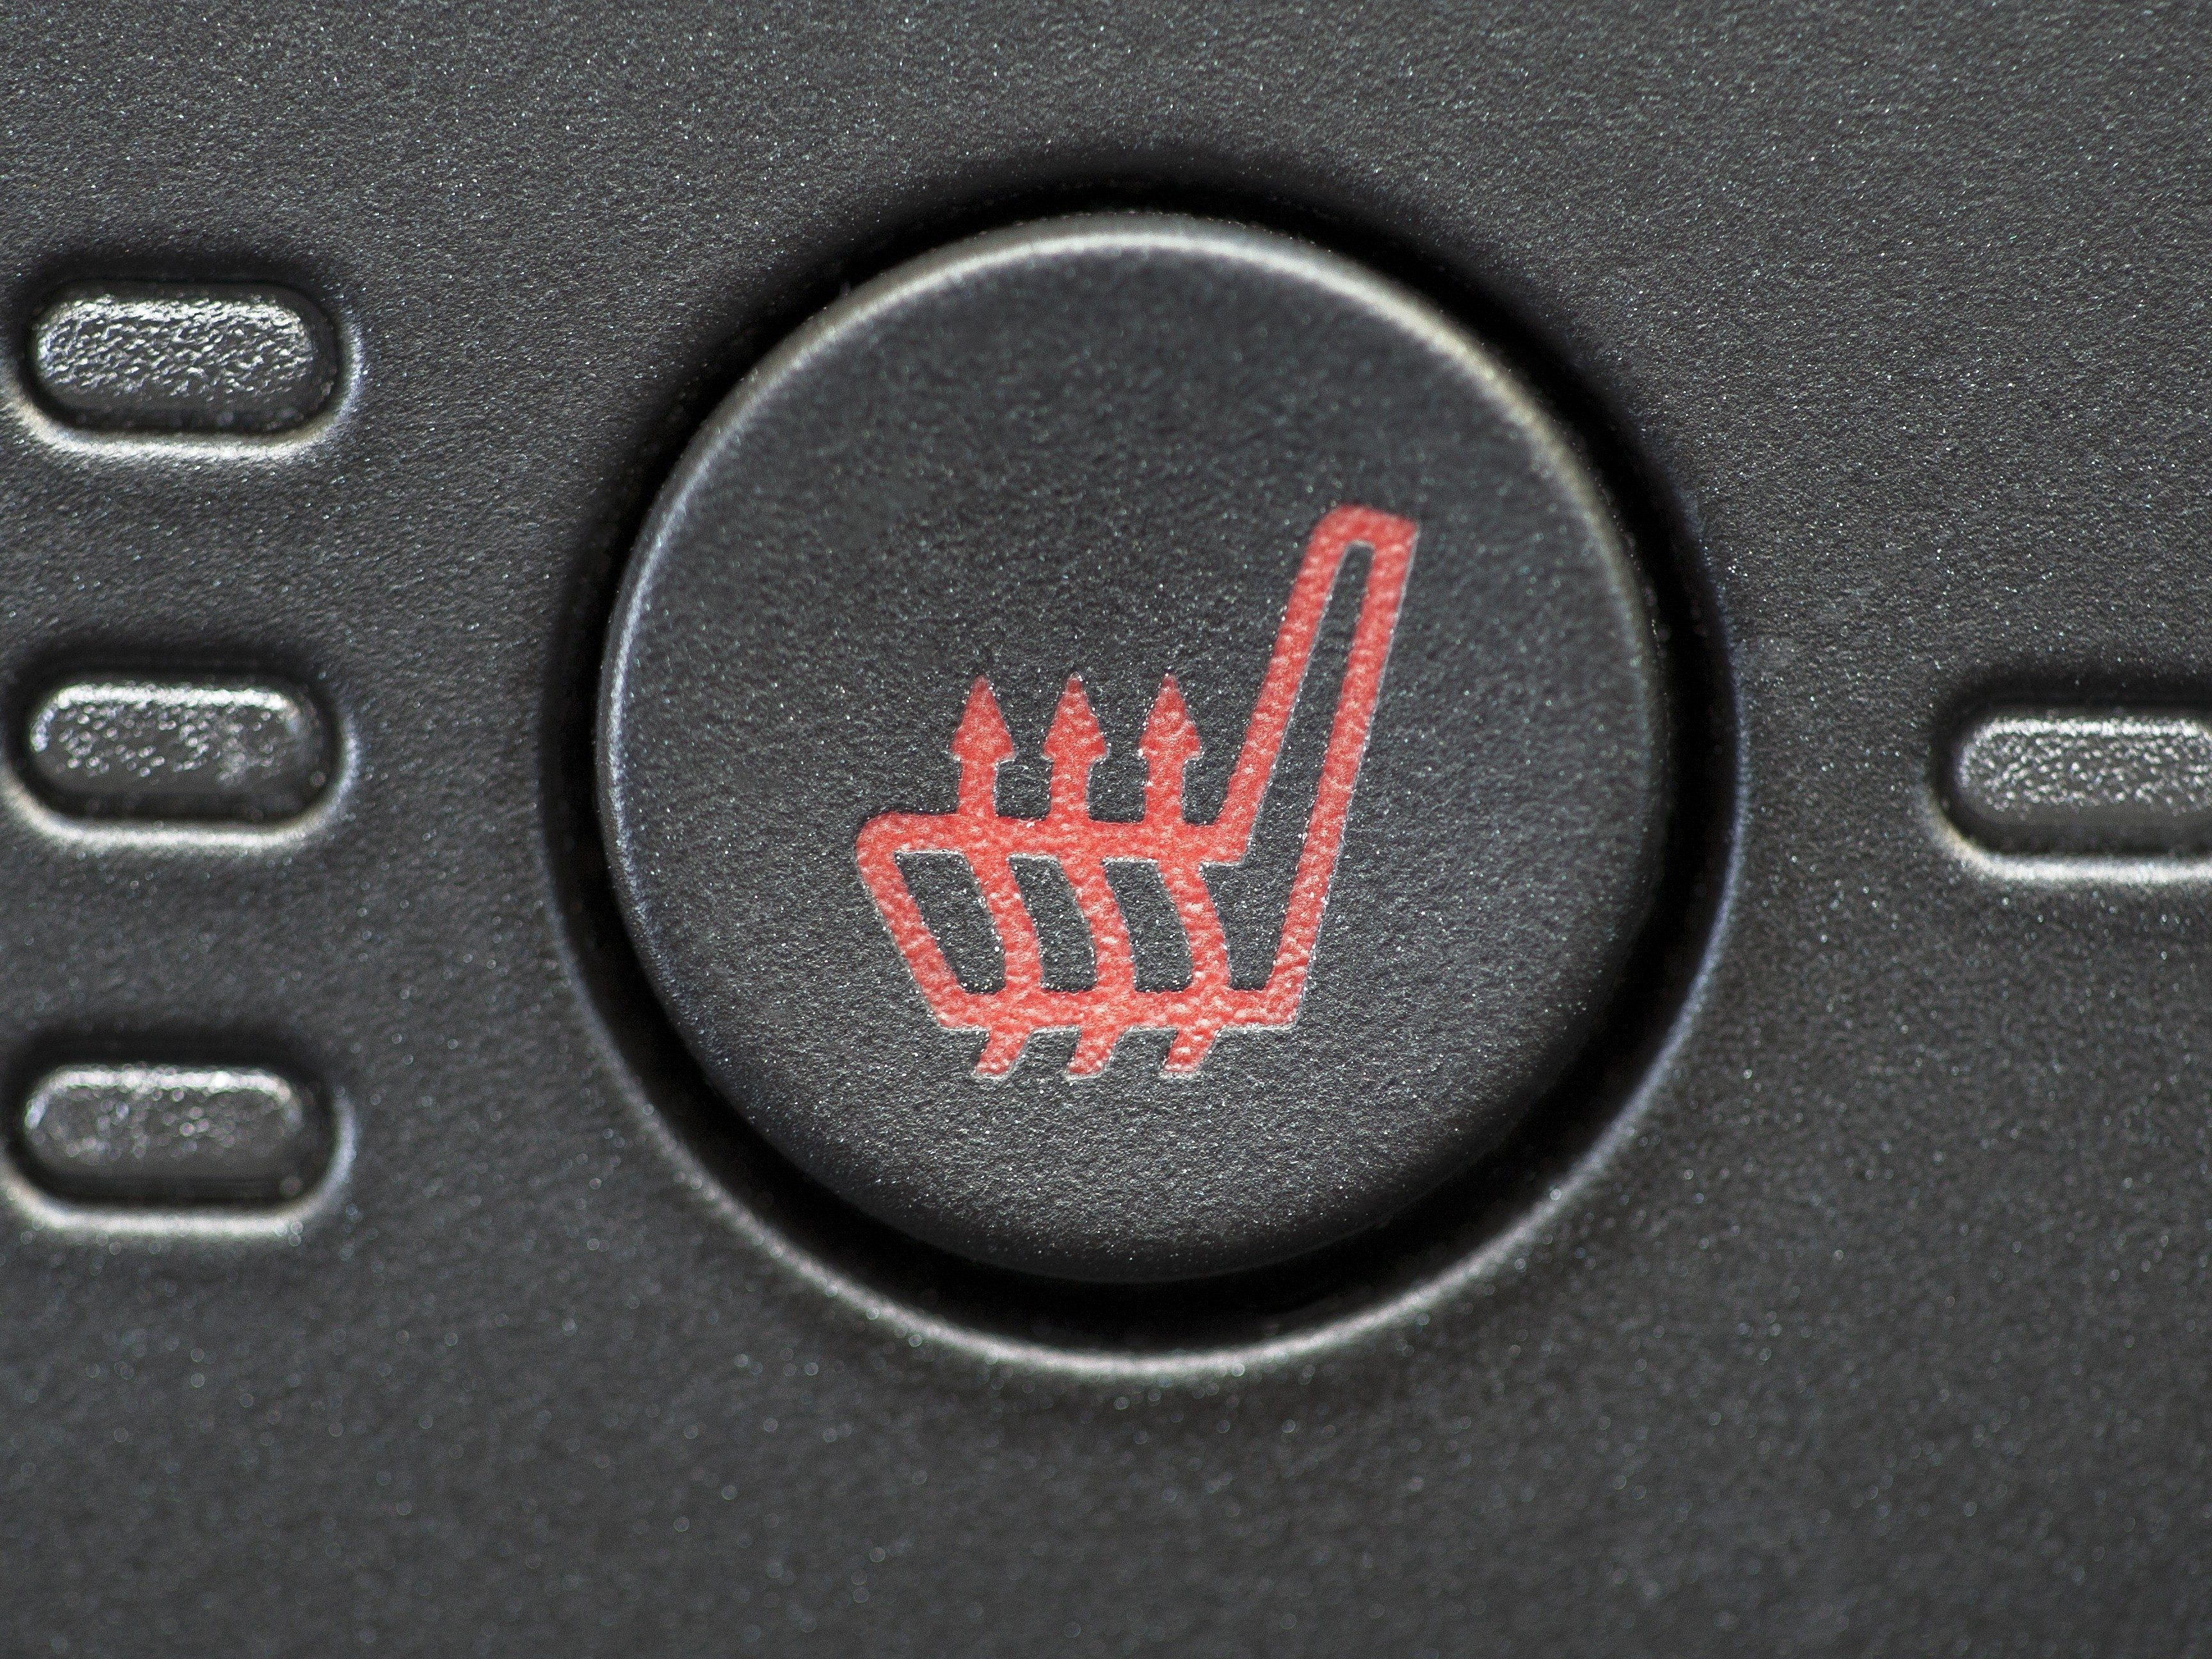 3. Heated Car Seats